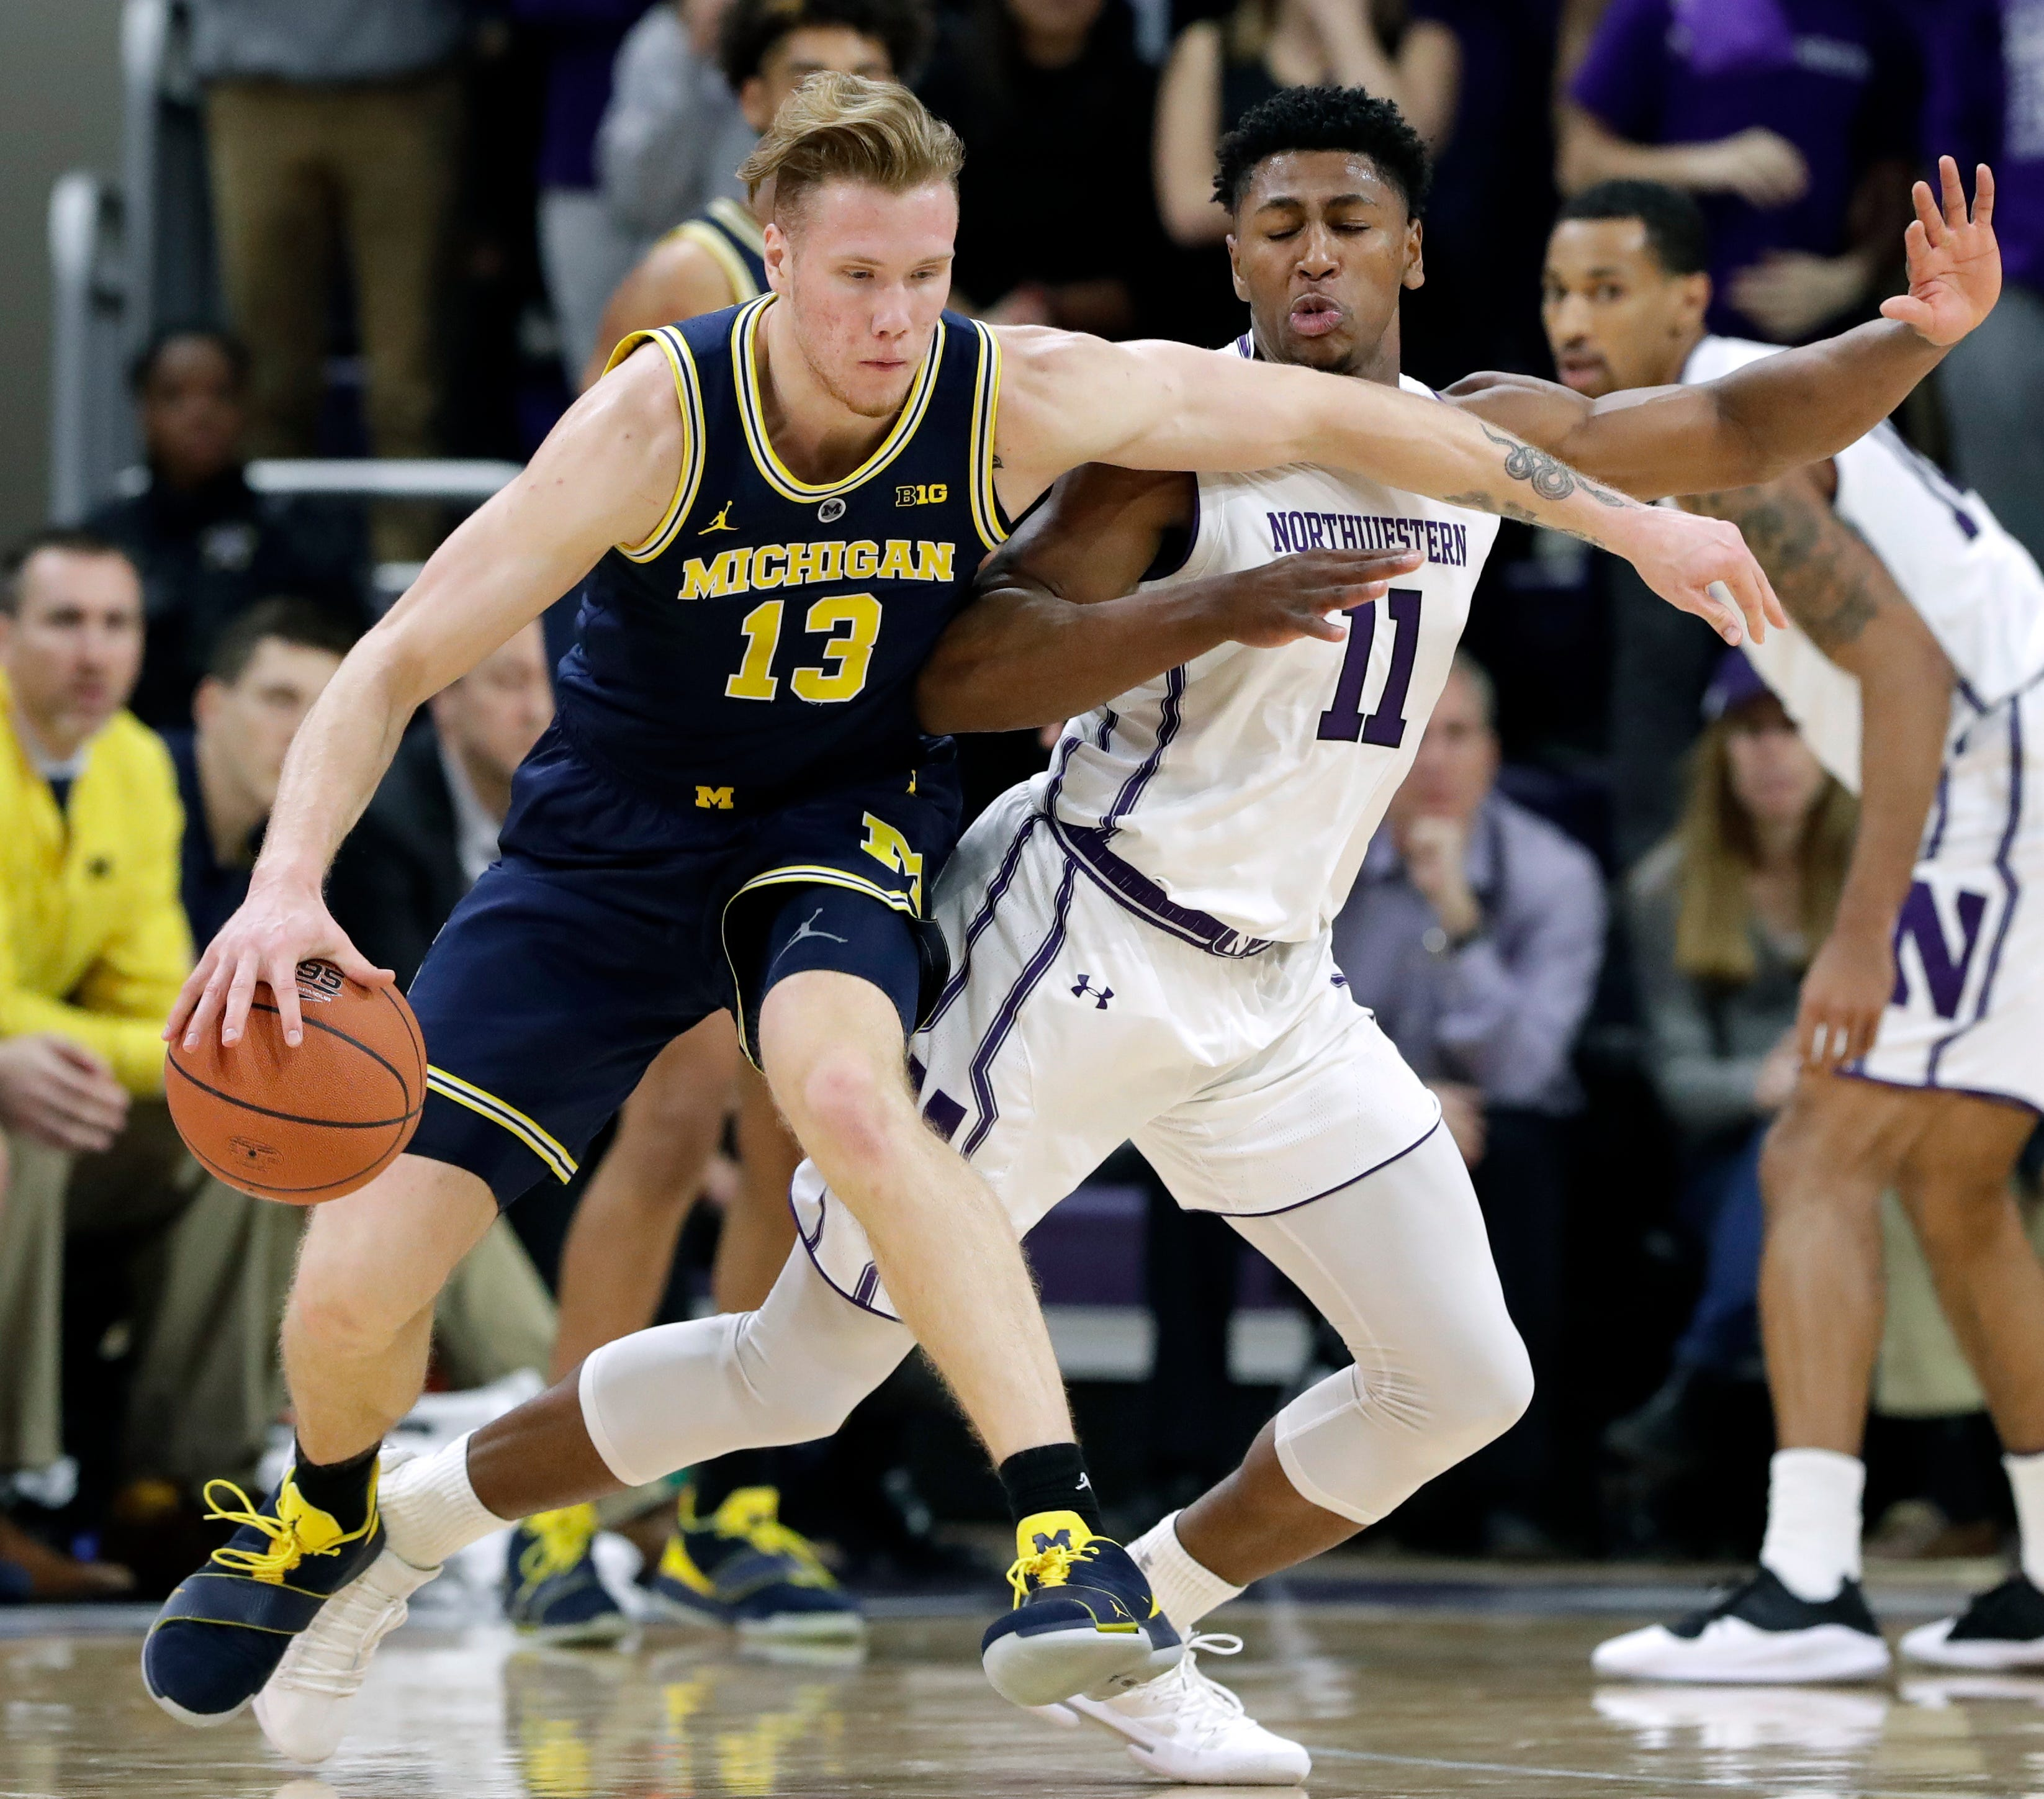 Michigan forward Ignas Brazdeikis, left, drives against Northwestern guard Anthony Gaines during the second half of U-M's 62-60 win on Tuesday, Dec. 4, 2018, in Evanston, Ill.